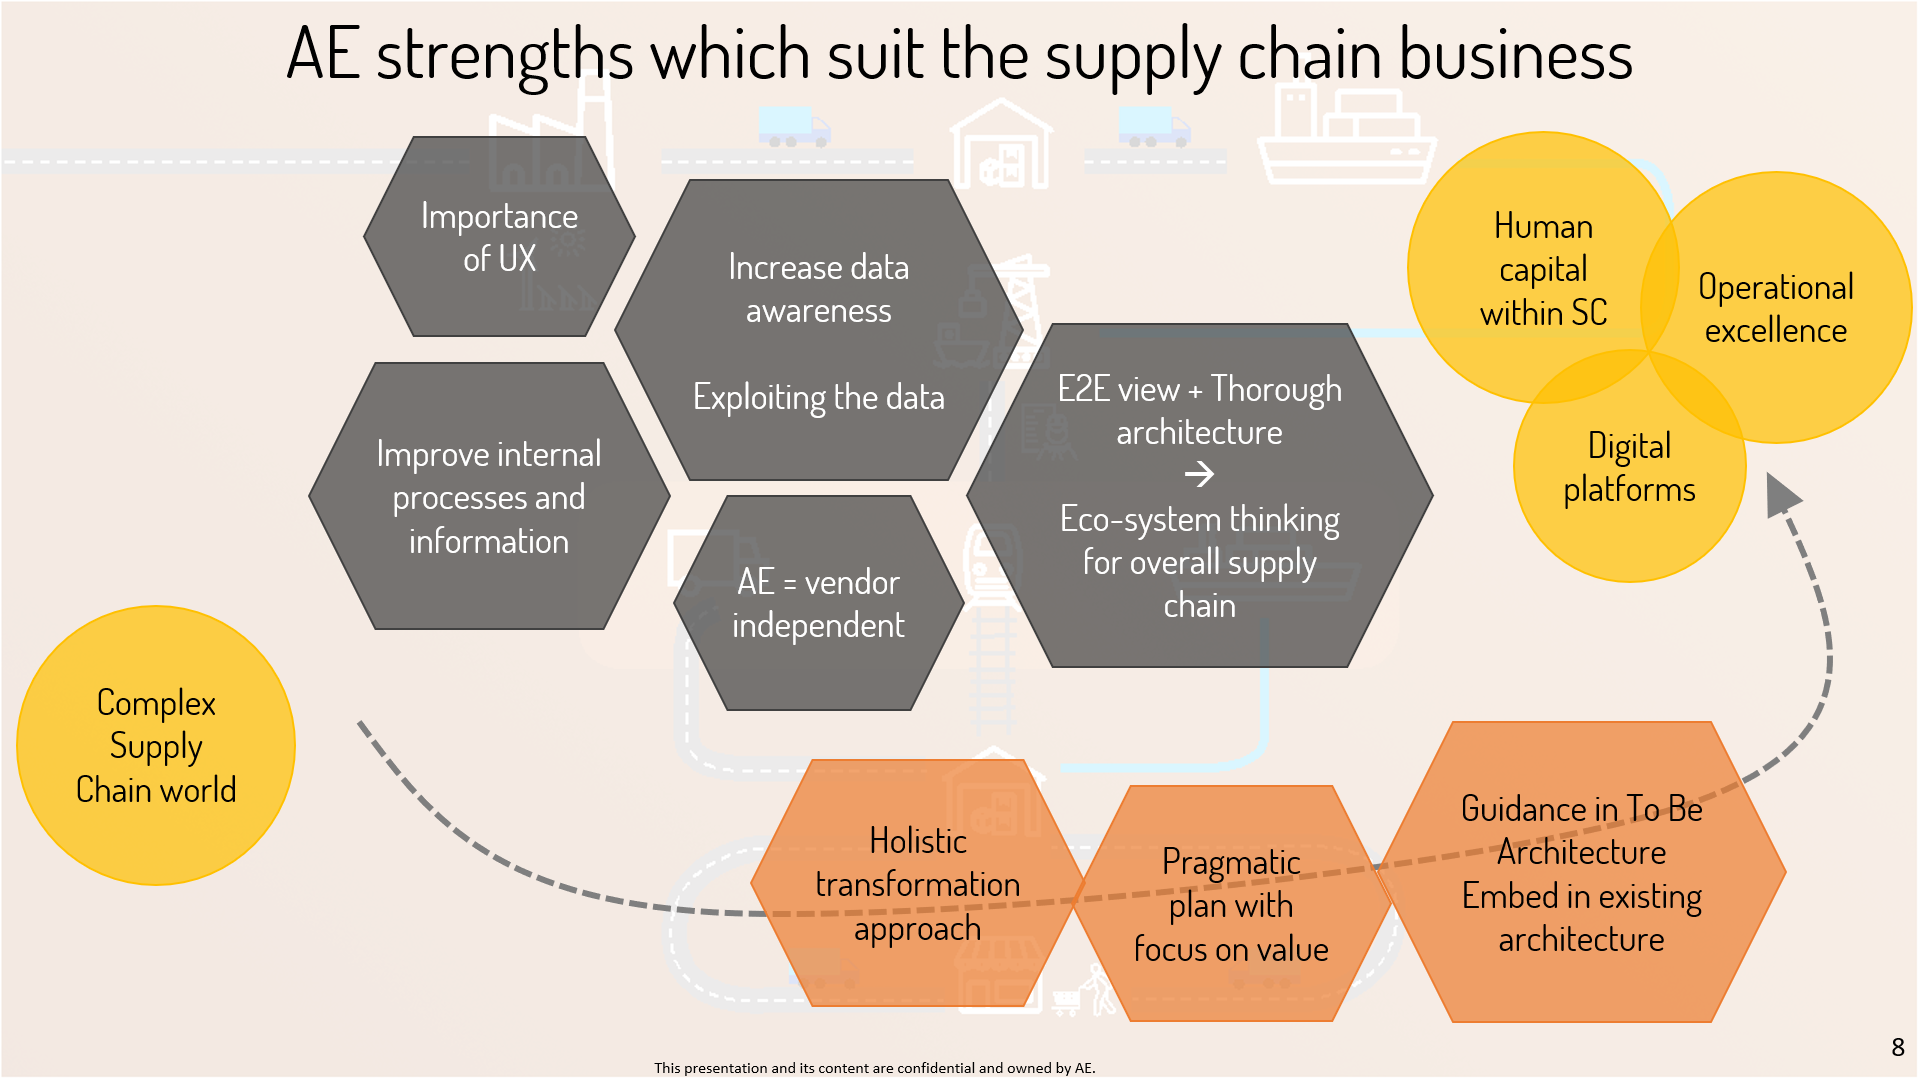 AE strengths suit complex supply chain business-1